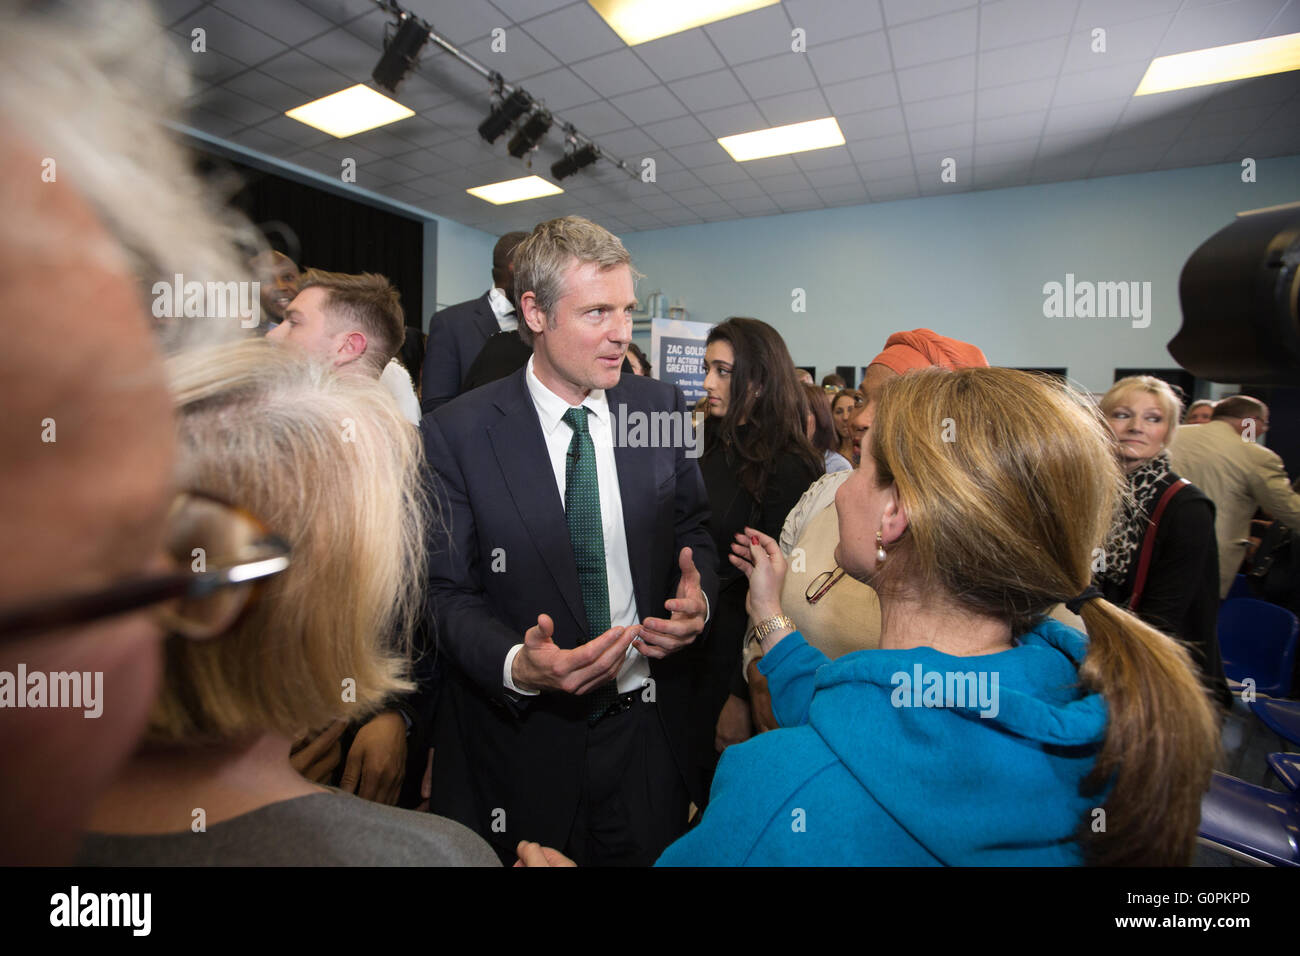 Richmond, Greater London, England, UK 03rd May 2016 The Conservative Mayoral candidate Zac Goldsmith MP for Richmond - Stock Image